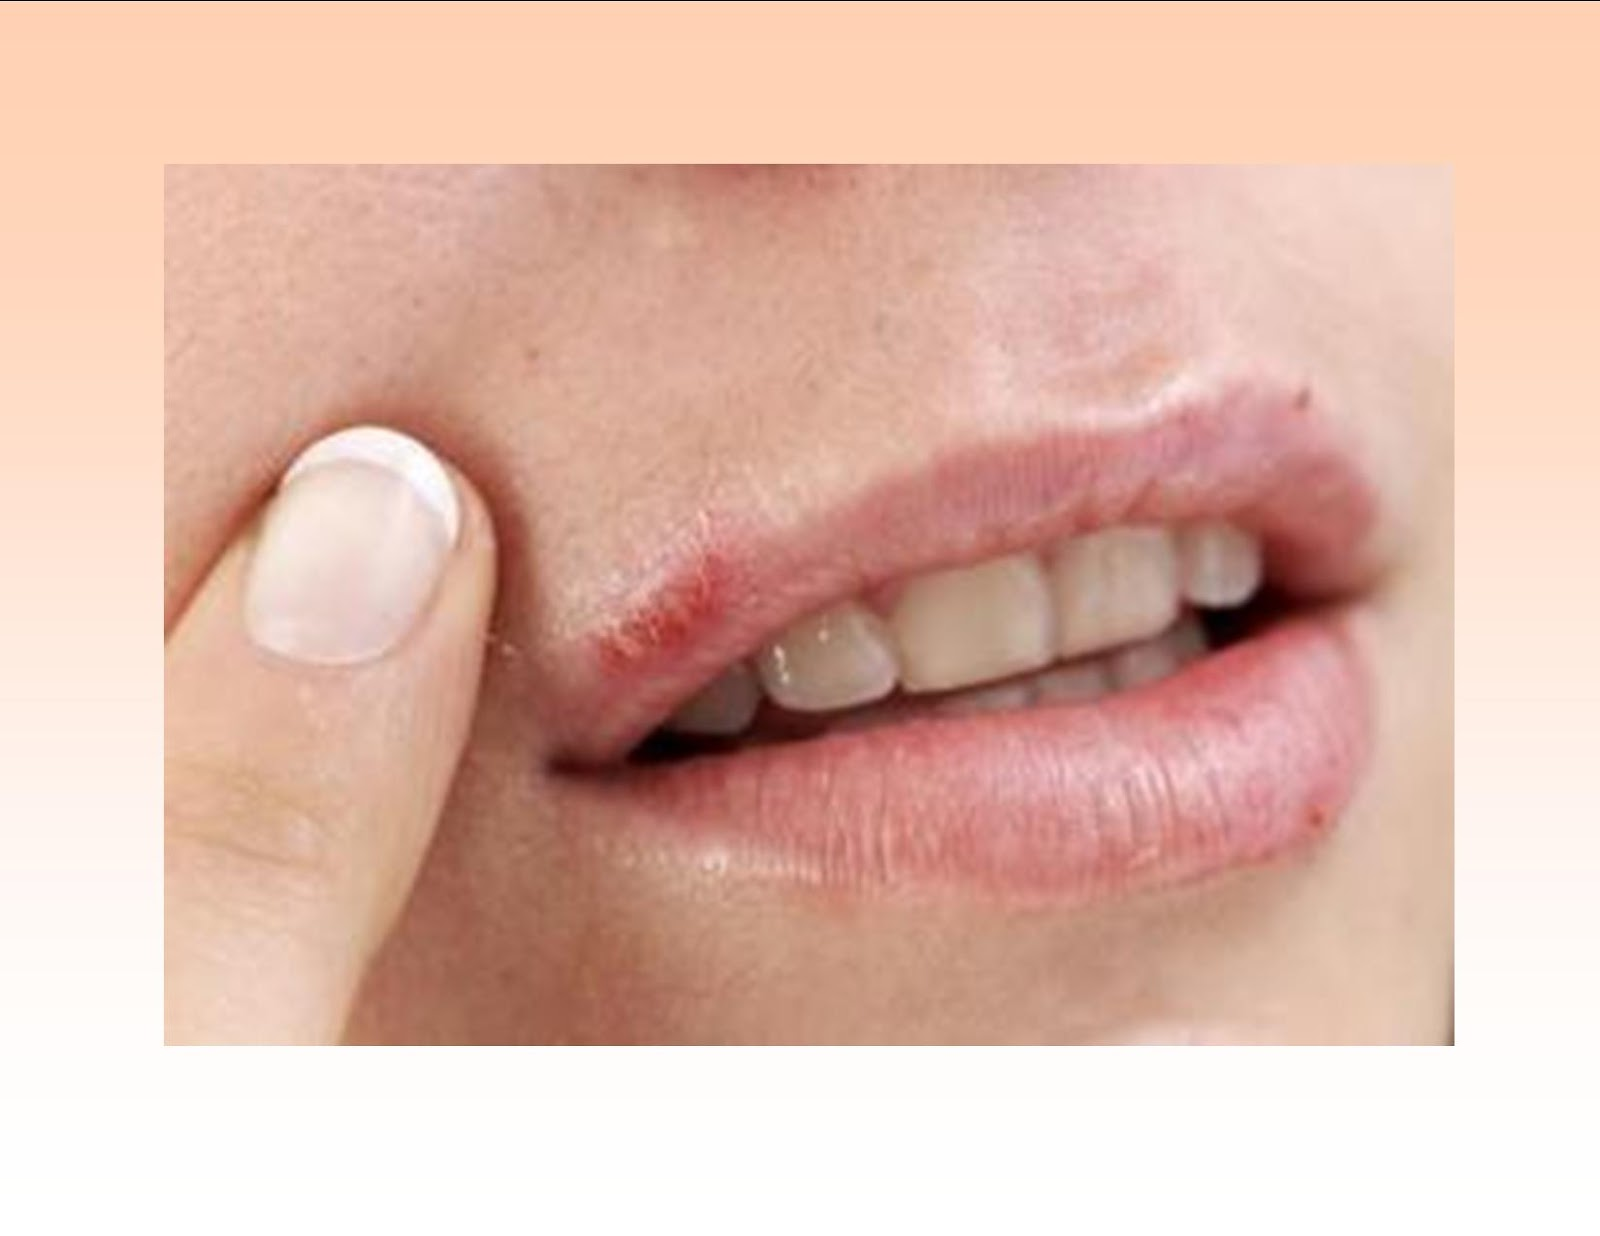 Blisters and mouth ulcers